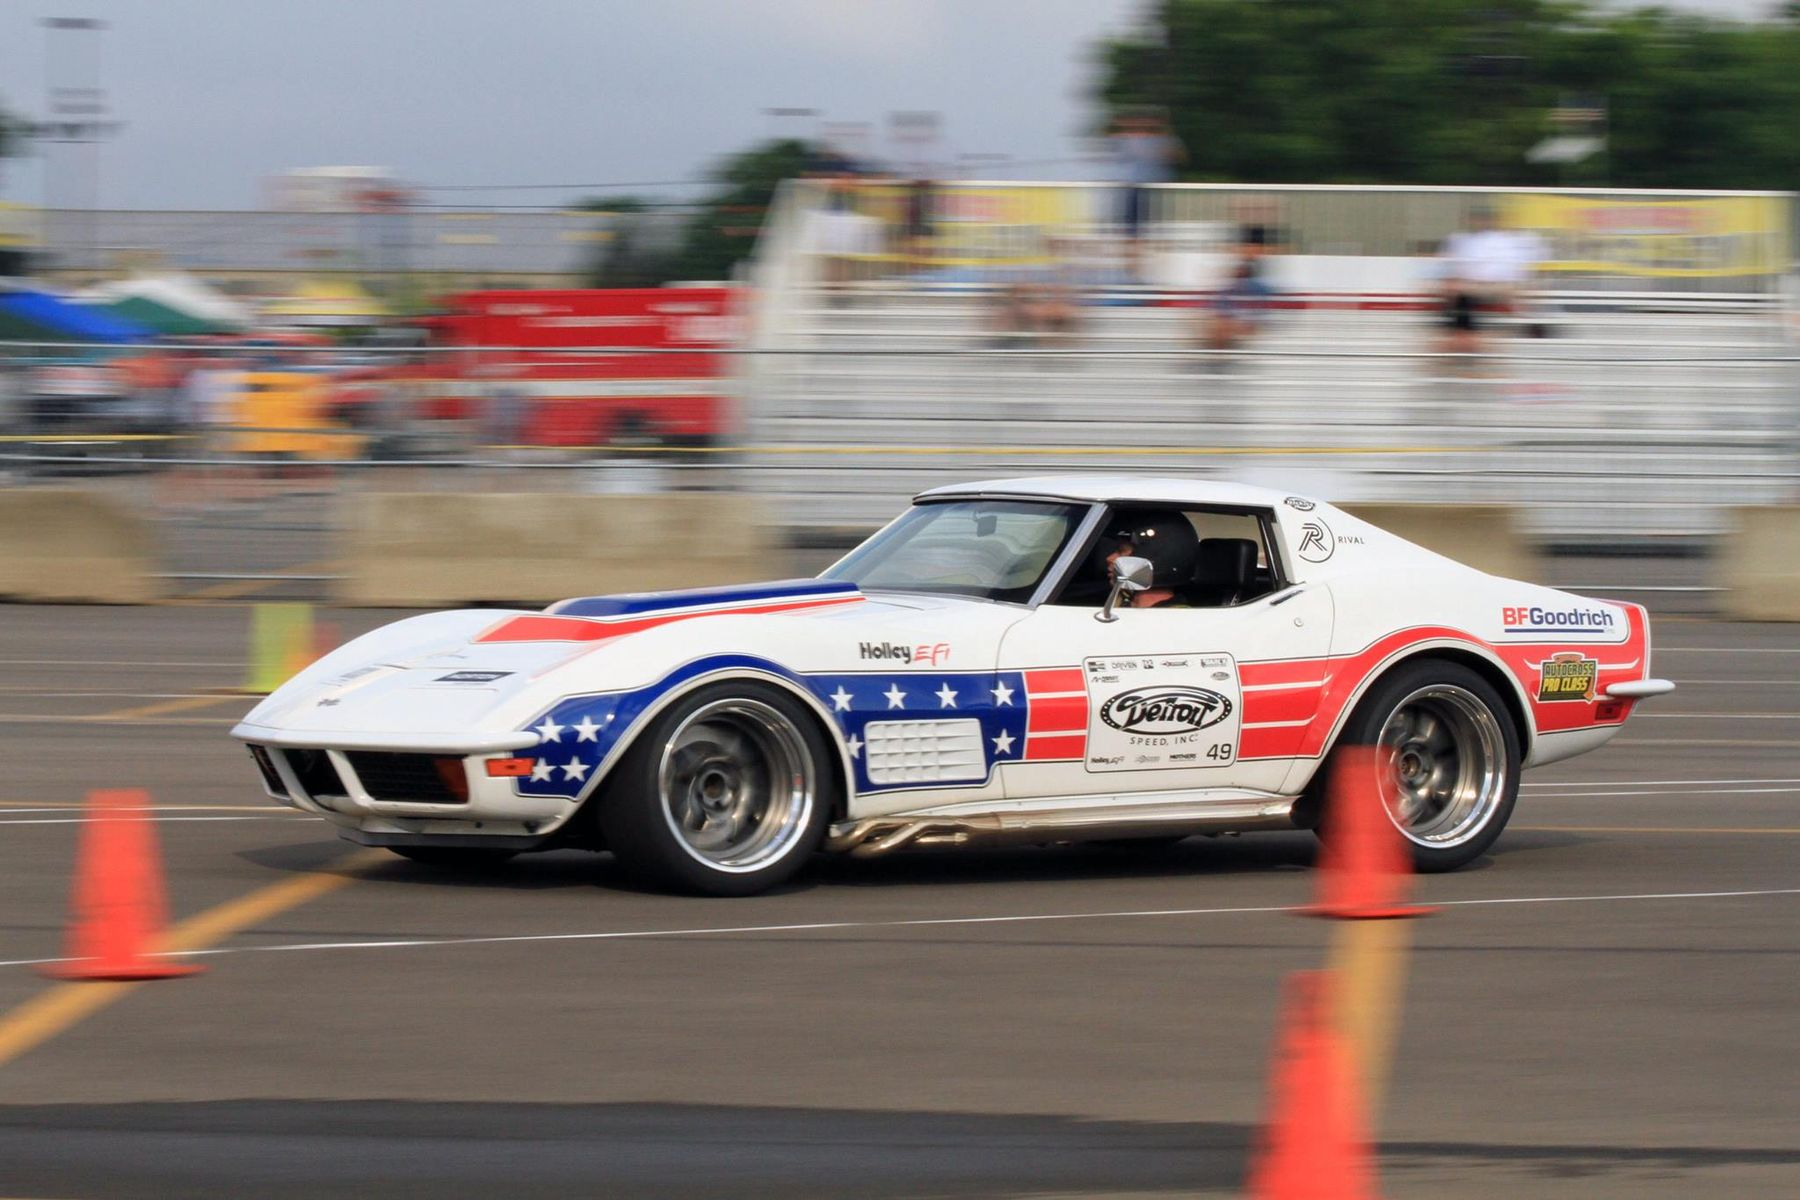 1972 Chevrolet Corvette Stingray | Ryan Mathews Wins Goodguys PPG Nationals Autocross in the Detroit Speed C3 Corvette on Forgeline GA3 Wheels